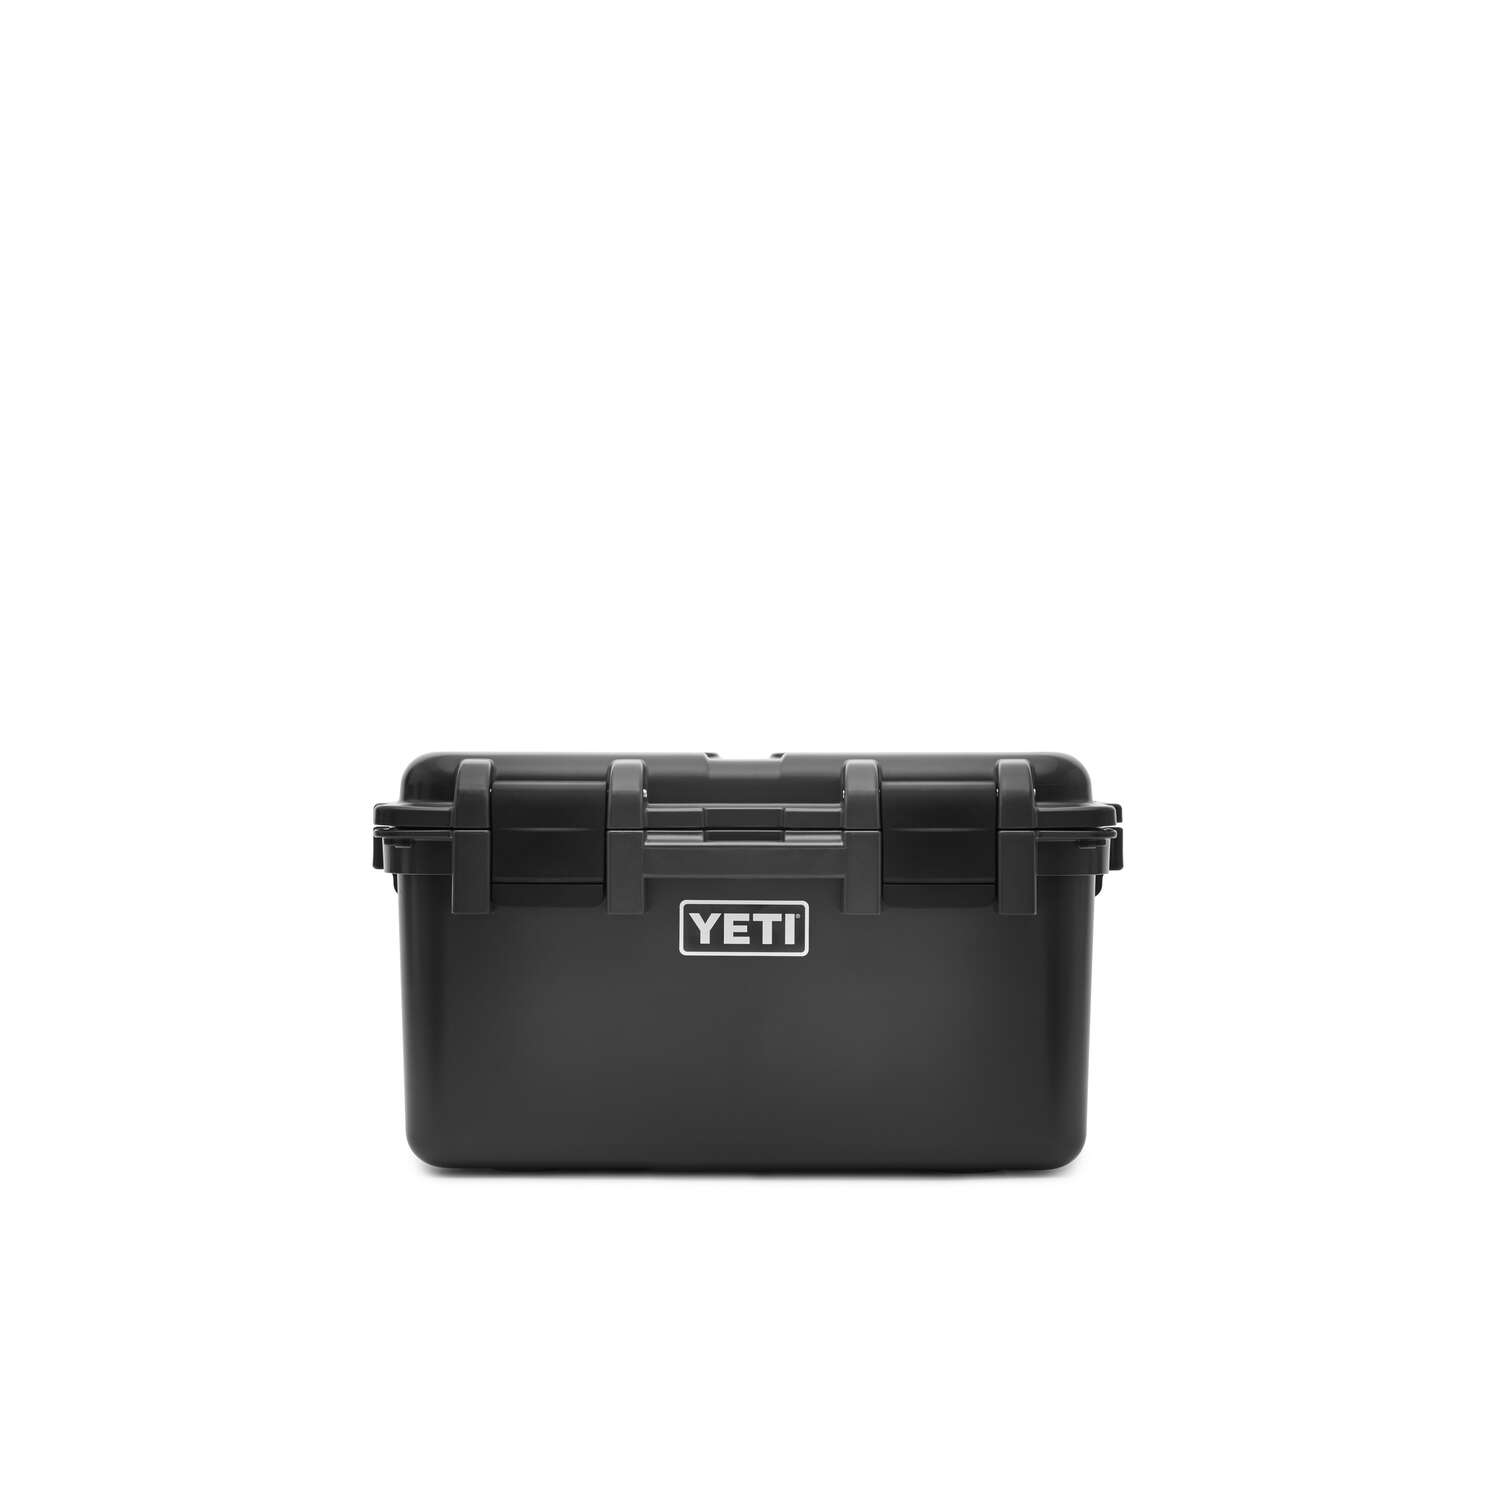 YETI  LoadOut  Charcoal  Cargo Carrier  1 pk